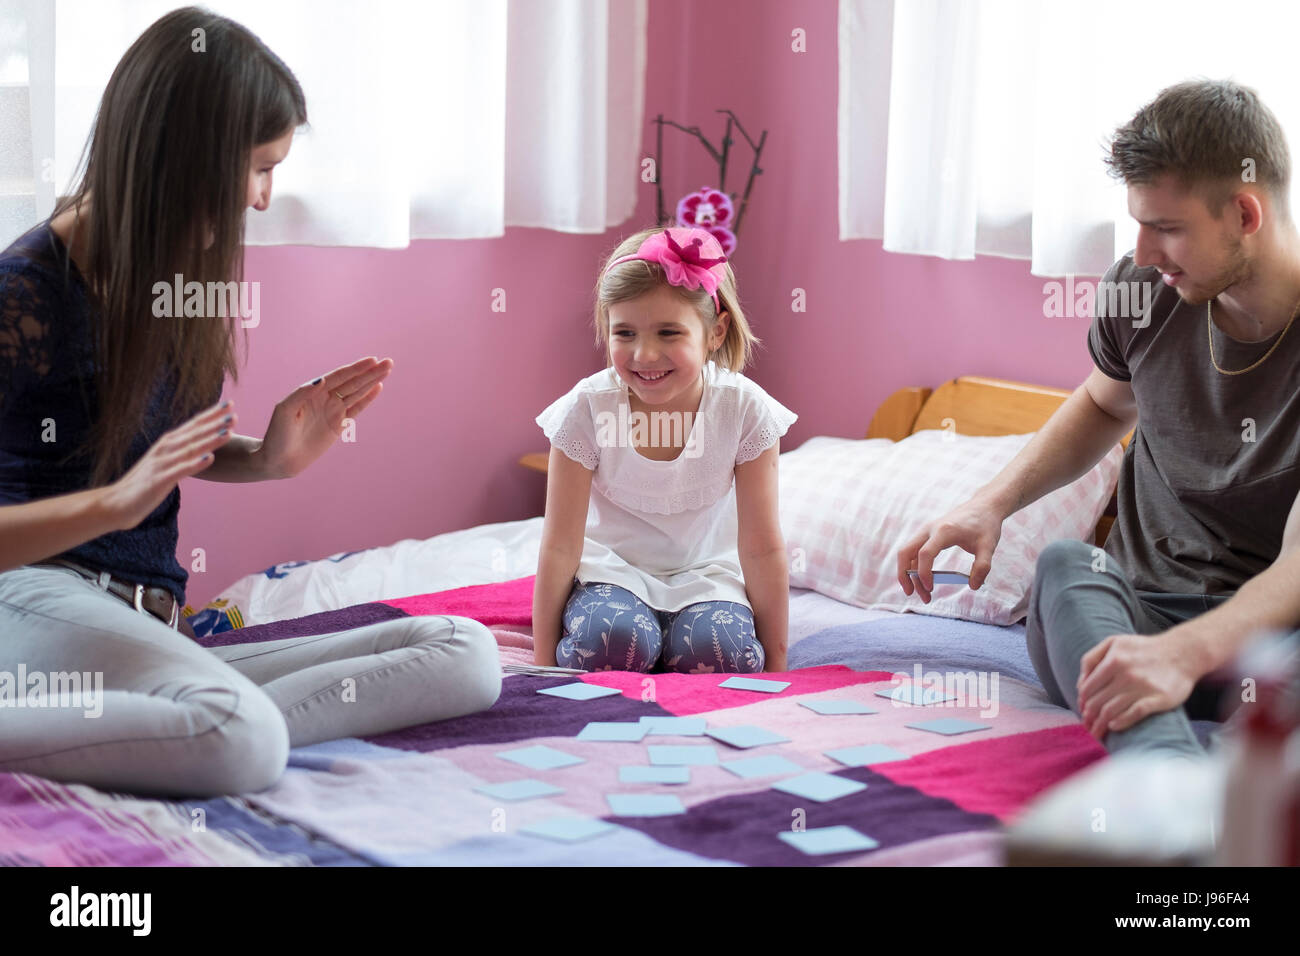 Mom and daughter playing in bed. Family fun concept - Stock Image